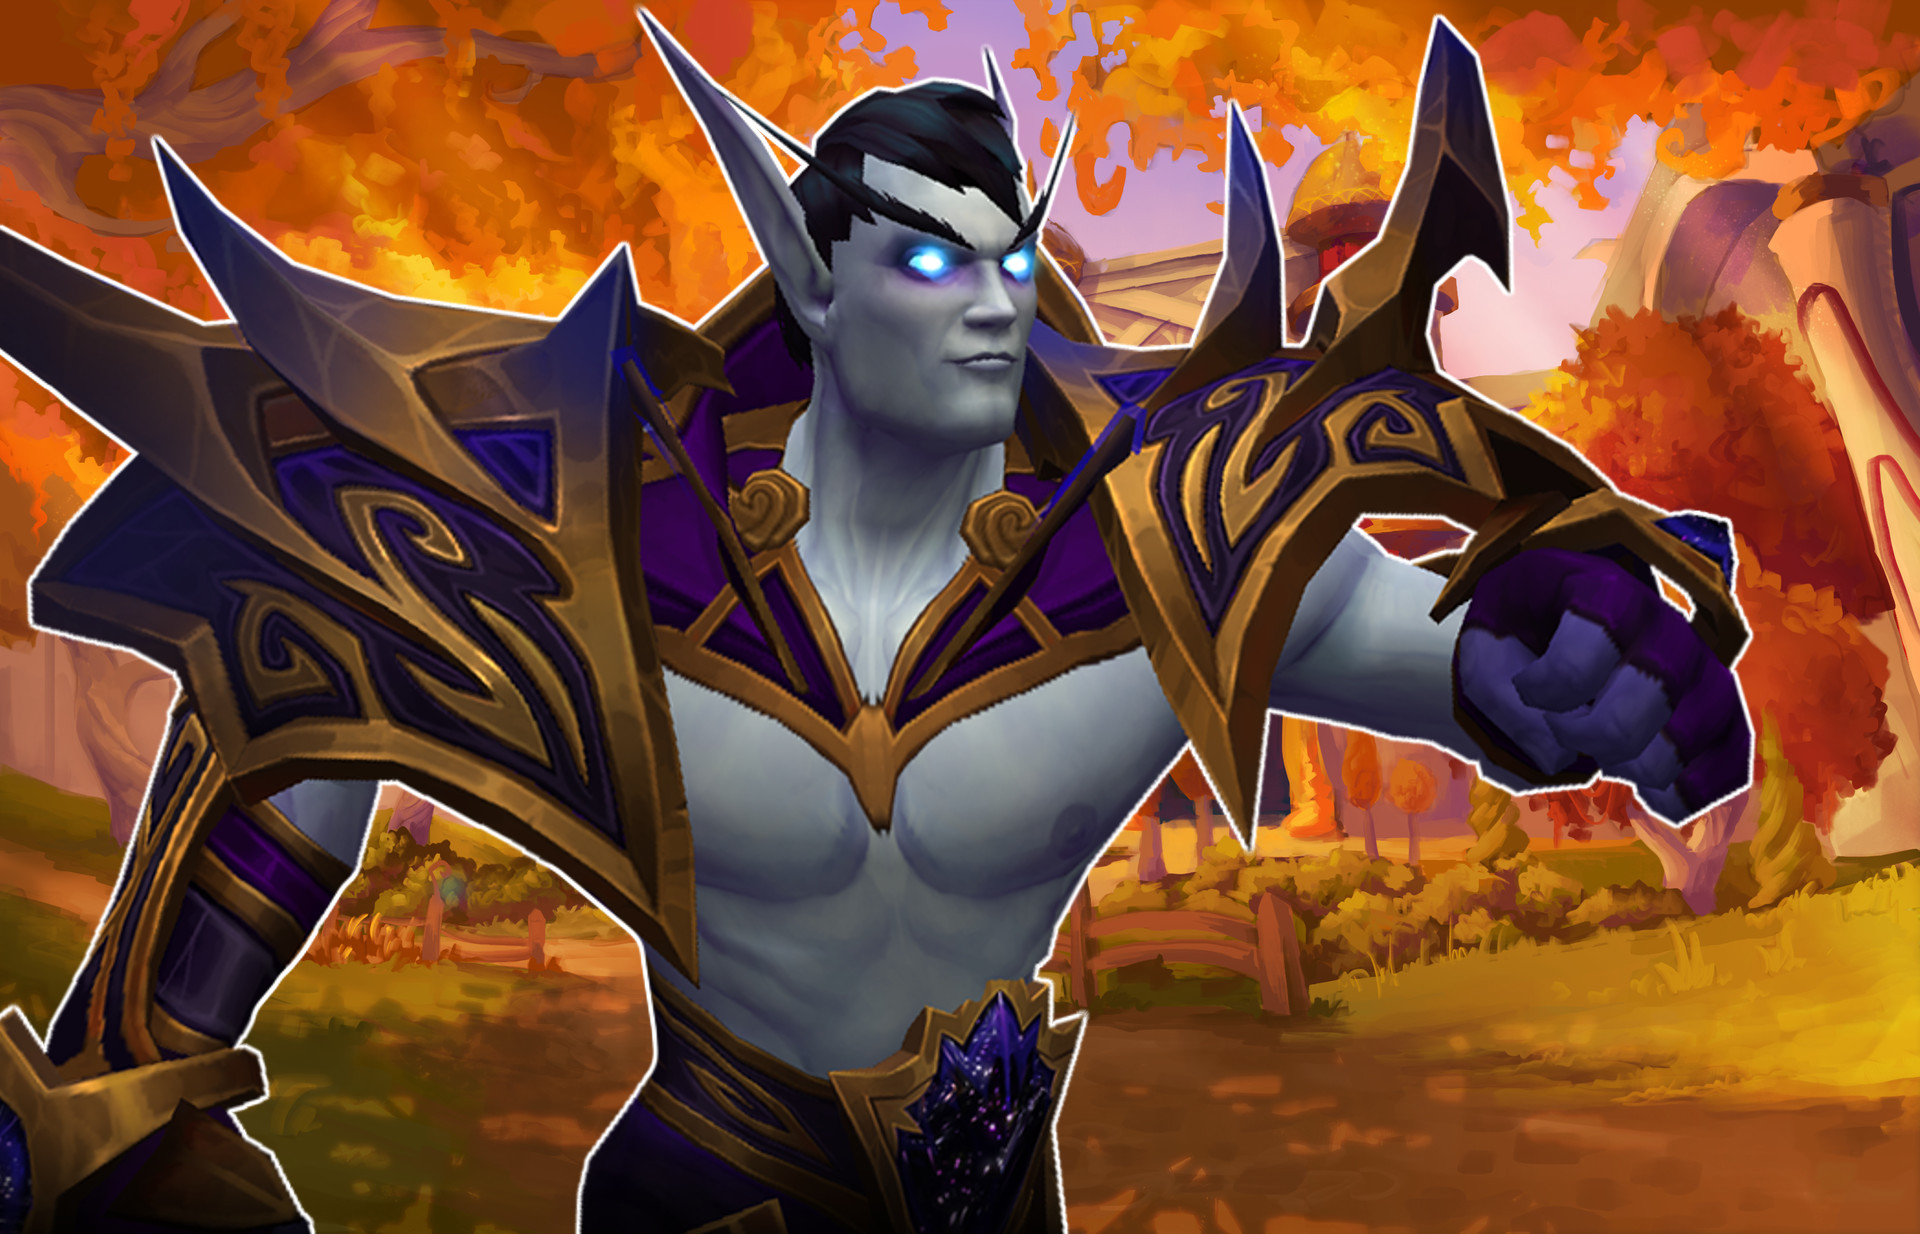 WoW Void Elf Male Silvermoon